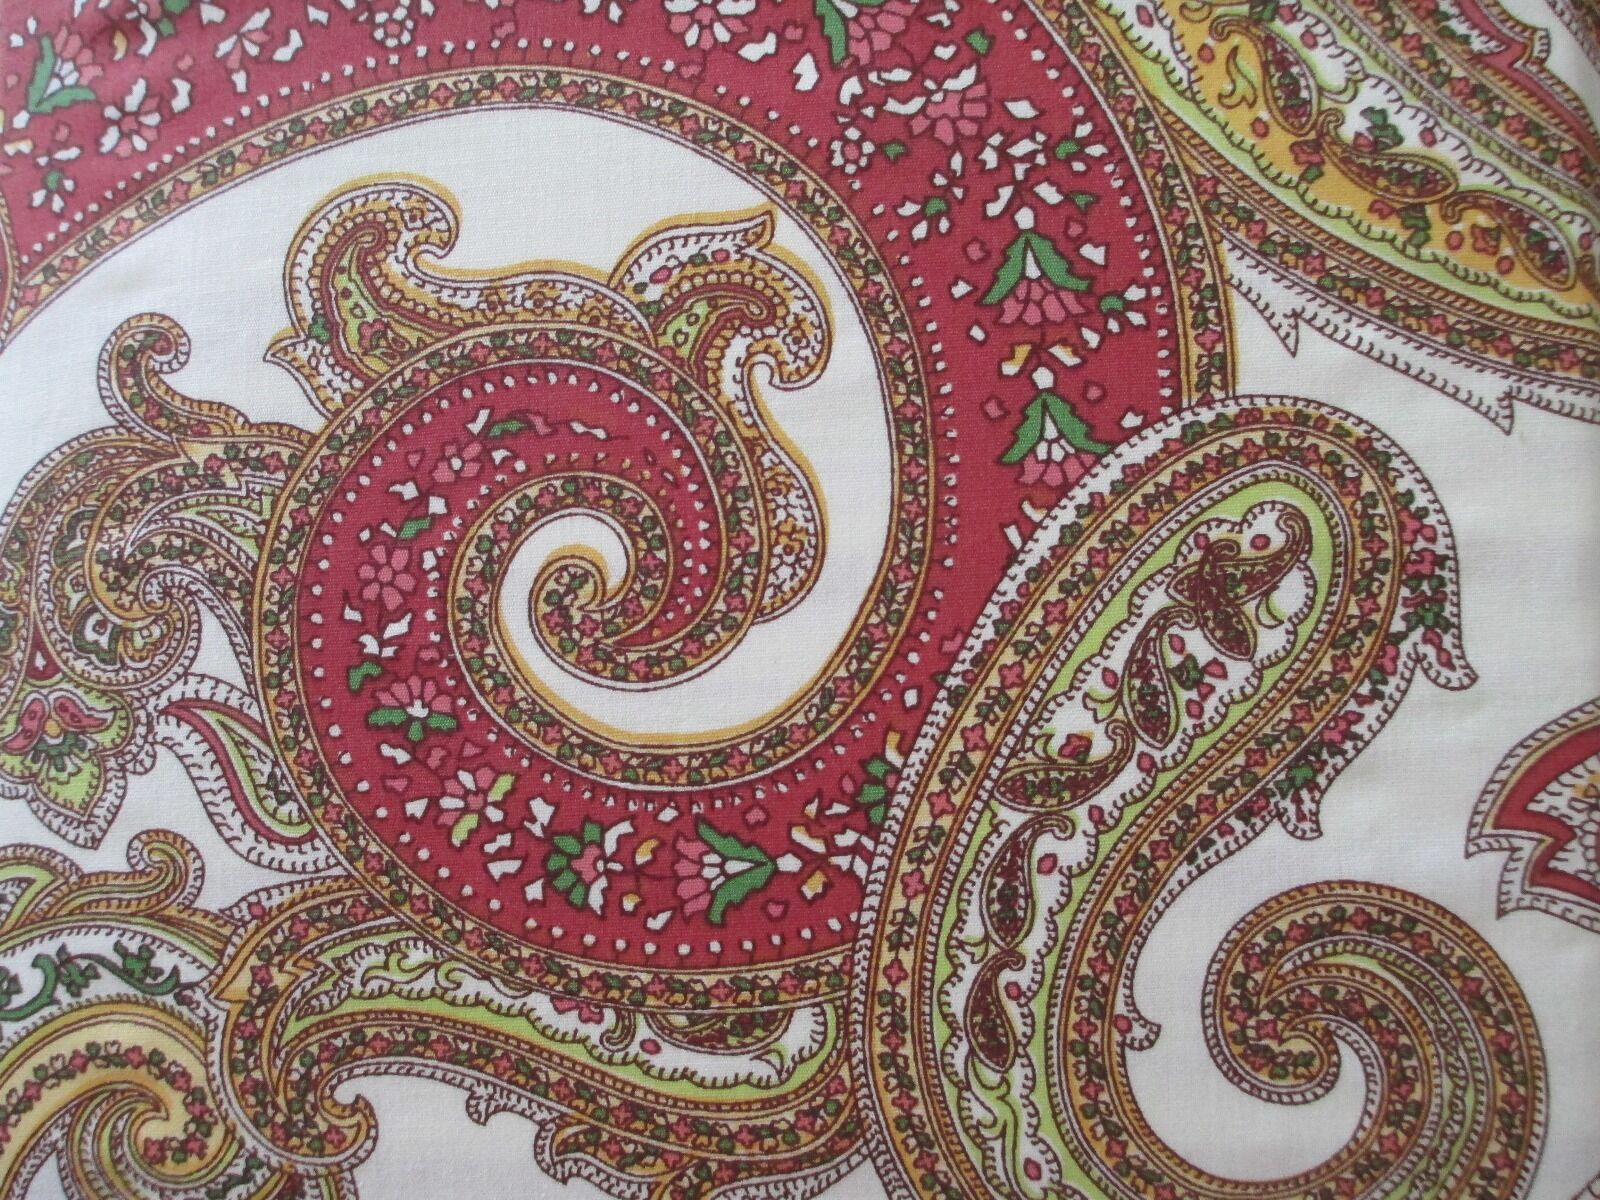 New RALPH LAUREN Cotton 3pc Duvet Set Red Mgoldccan Paisley Floral - Full Queen